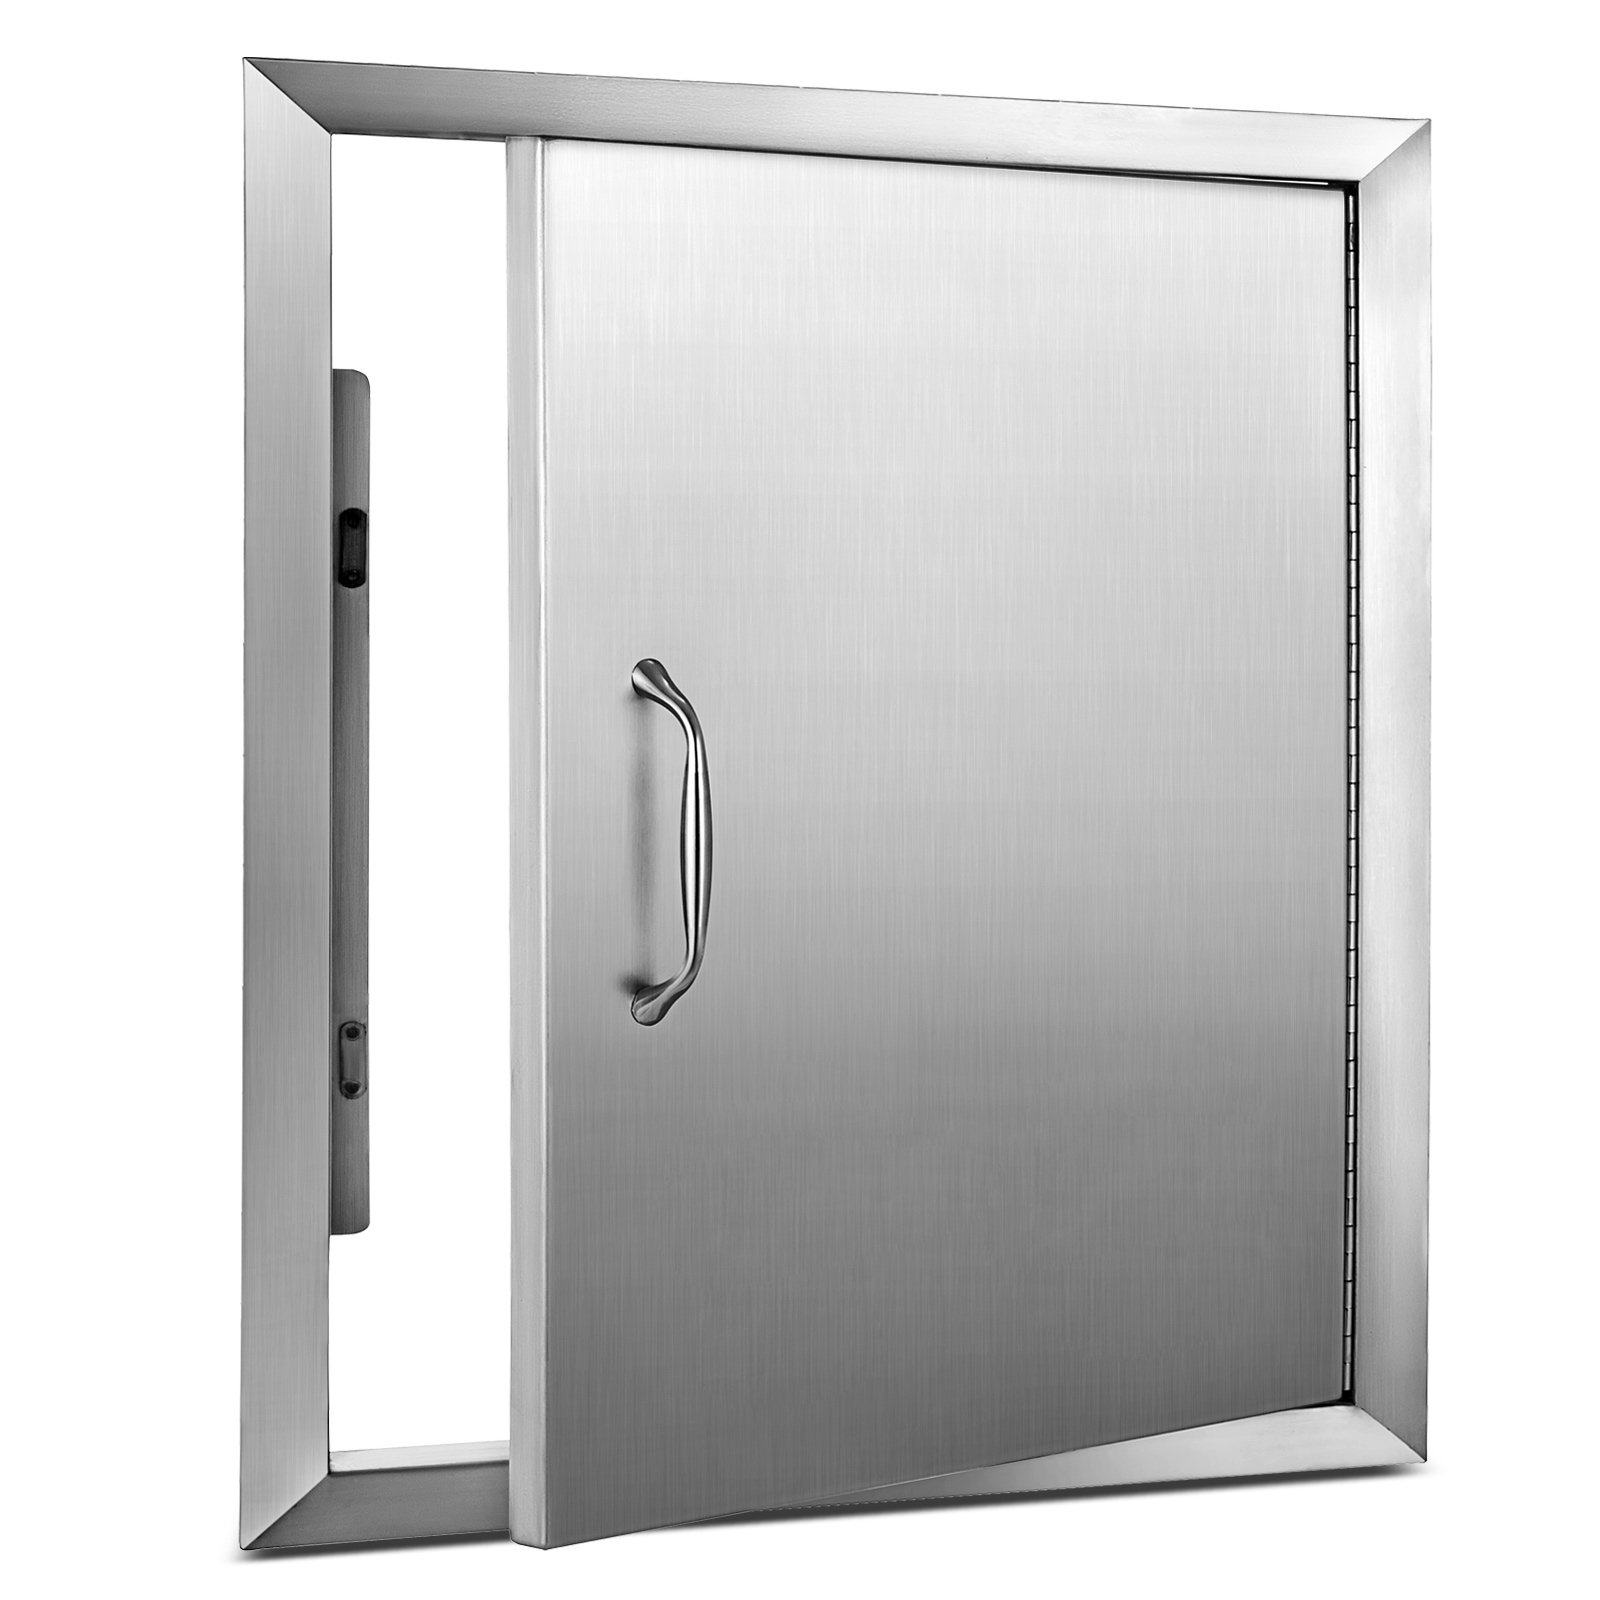 """Happybuy BBQ Access Door 18""""x 20"""" BBQ Island Single Door Stainless steel for Outdoor Kitchen Grilling Station or Commercial BBQ Island"""